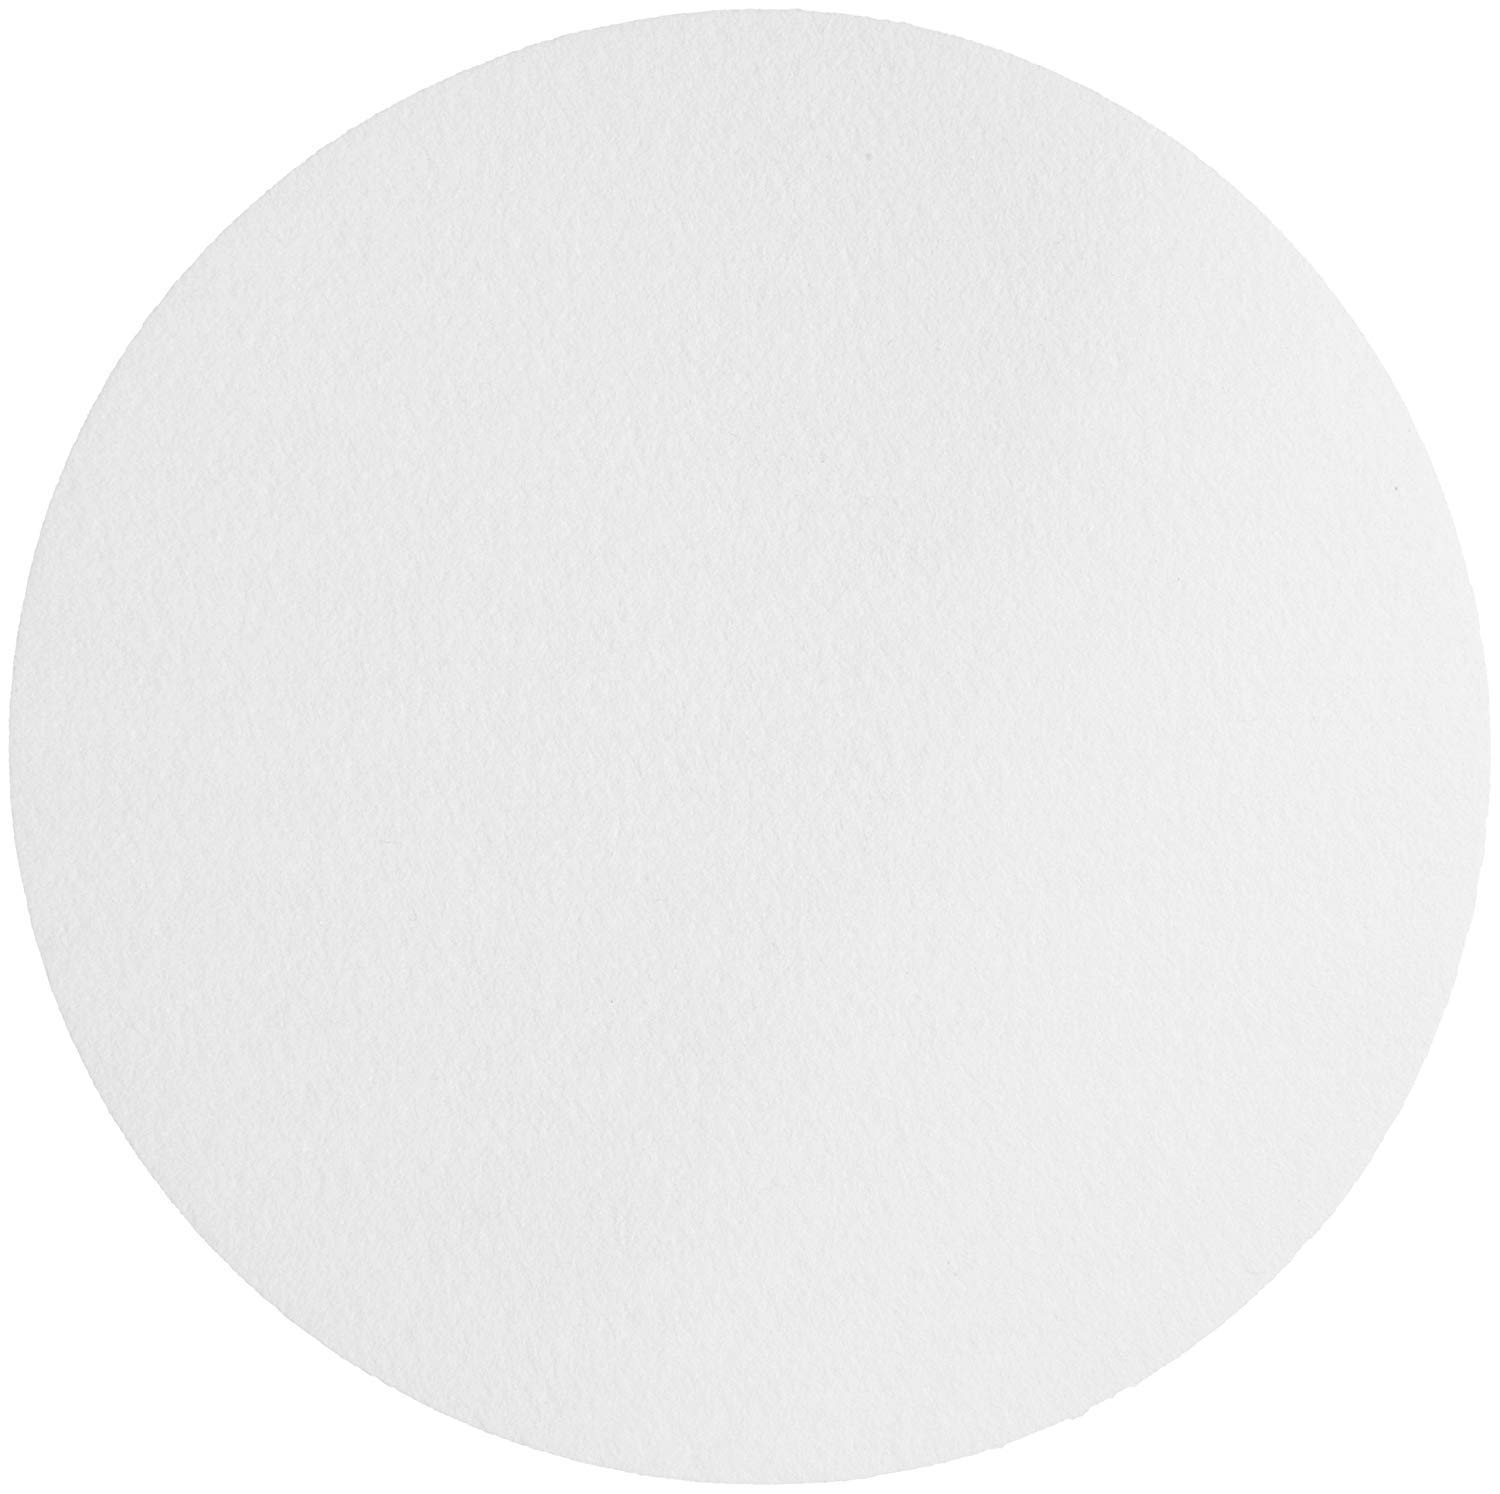 GE Bio-Sciences Qualitative Filter Paper Circles, Medium Flow Rate, 150mm Diameter, Pack of 100 by GE Bio-Sciences